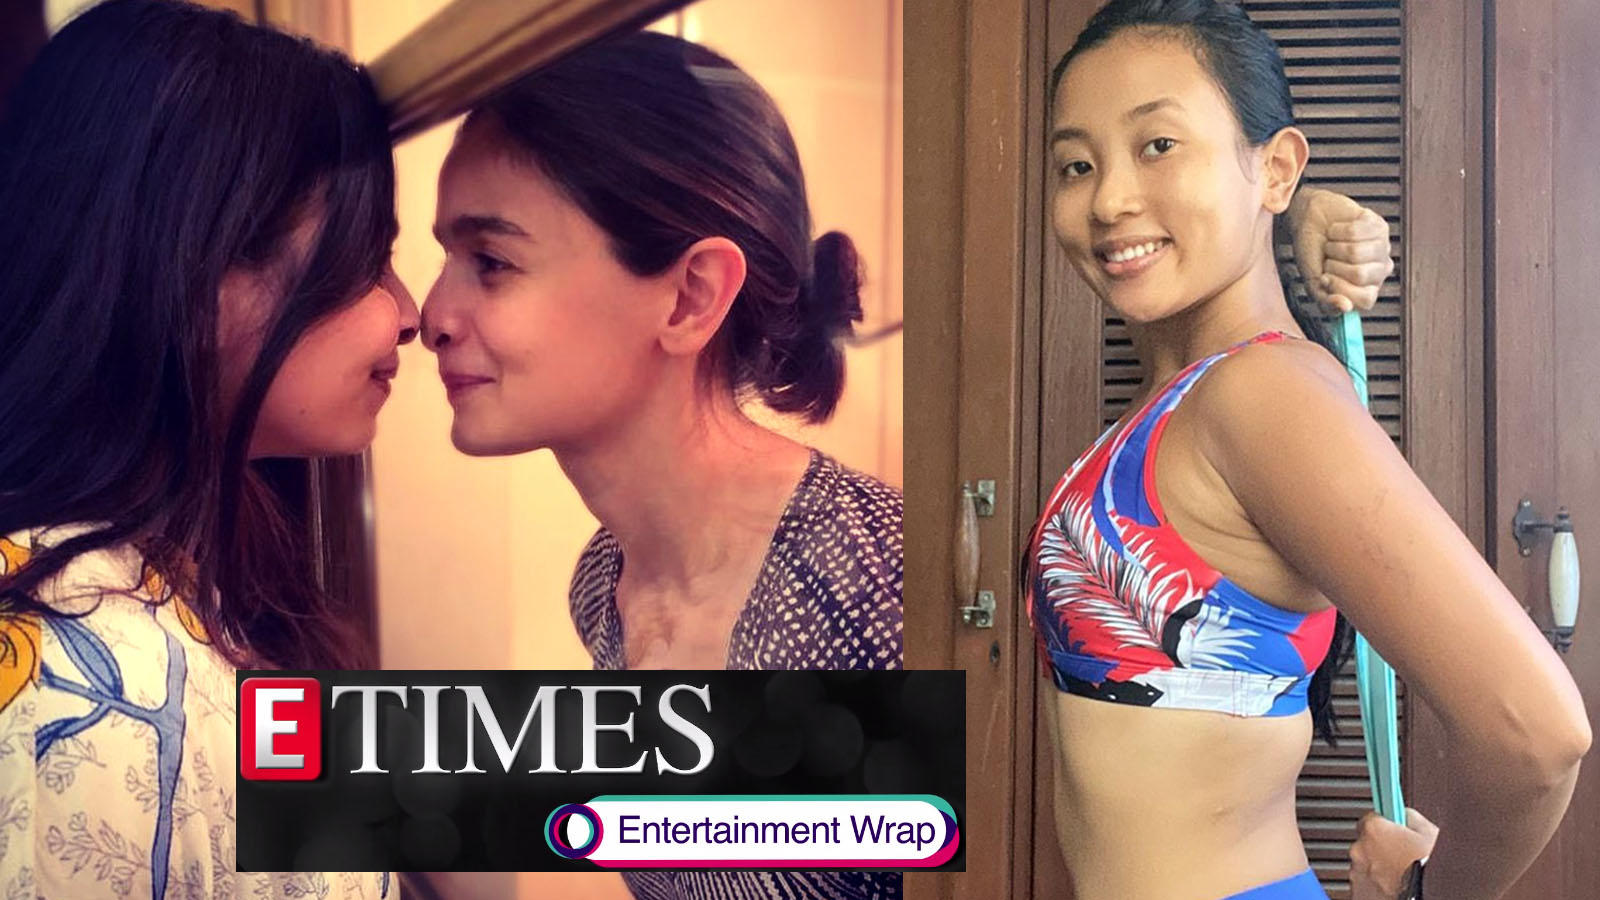 alia-bhatt-and-shaheen-bhatt-teach-us-a-new-way-of-social-distancing-milind-somans-wife-ankita-konwars-toned-figure-in-her-latest-photo-will-inspire-you-to-sweat-it-out-now-and-more-